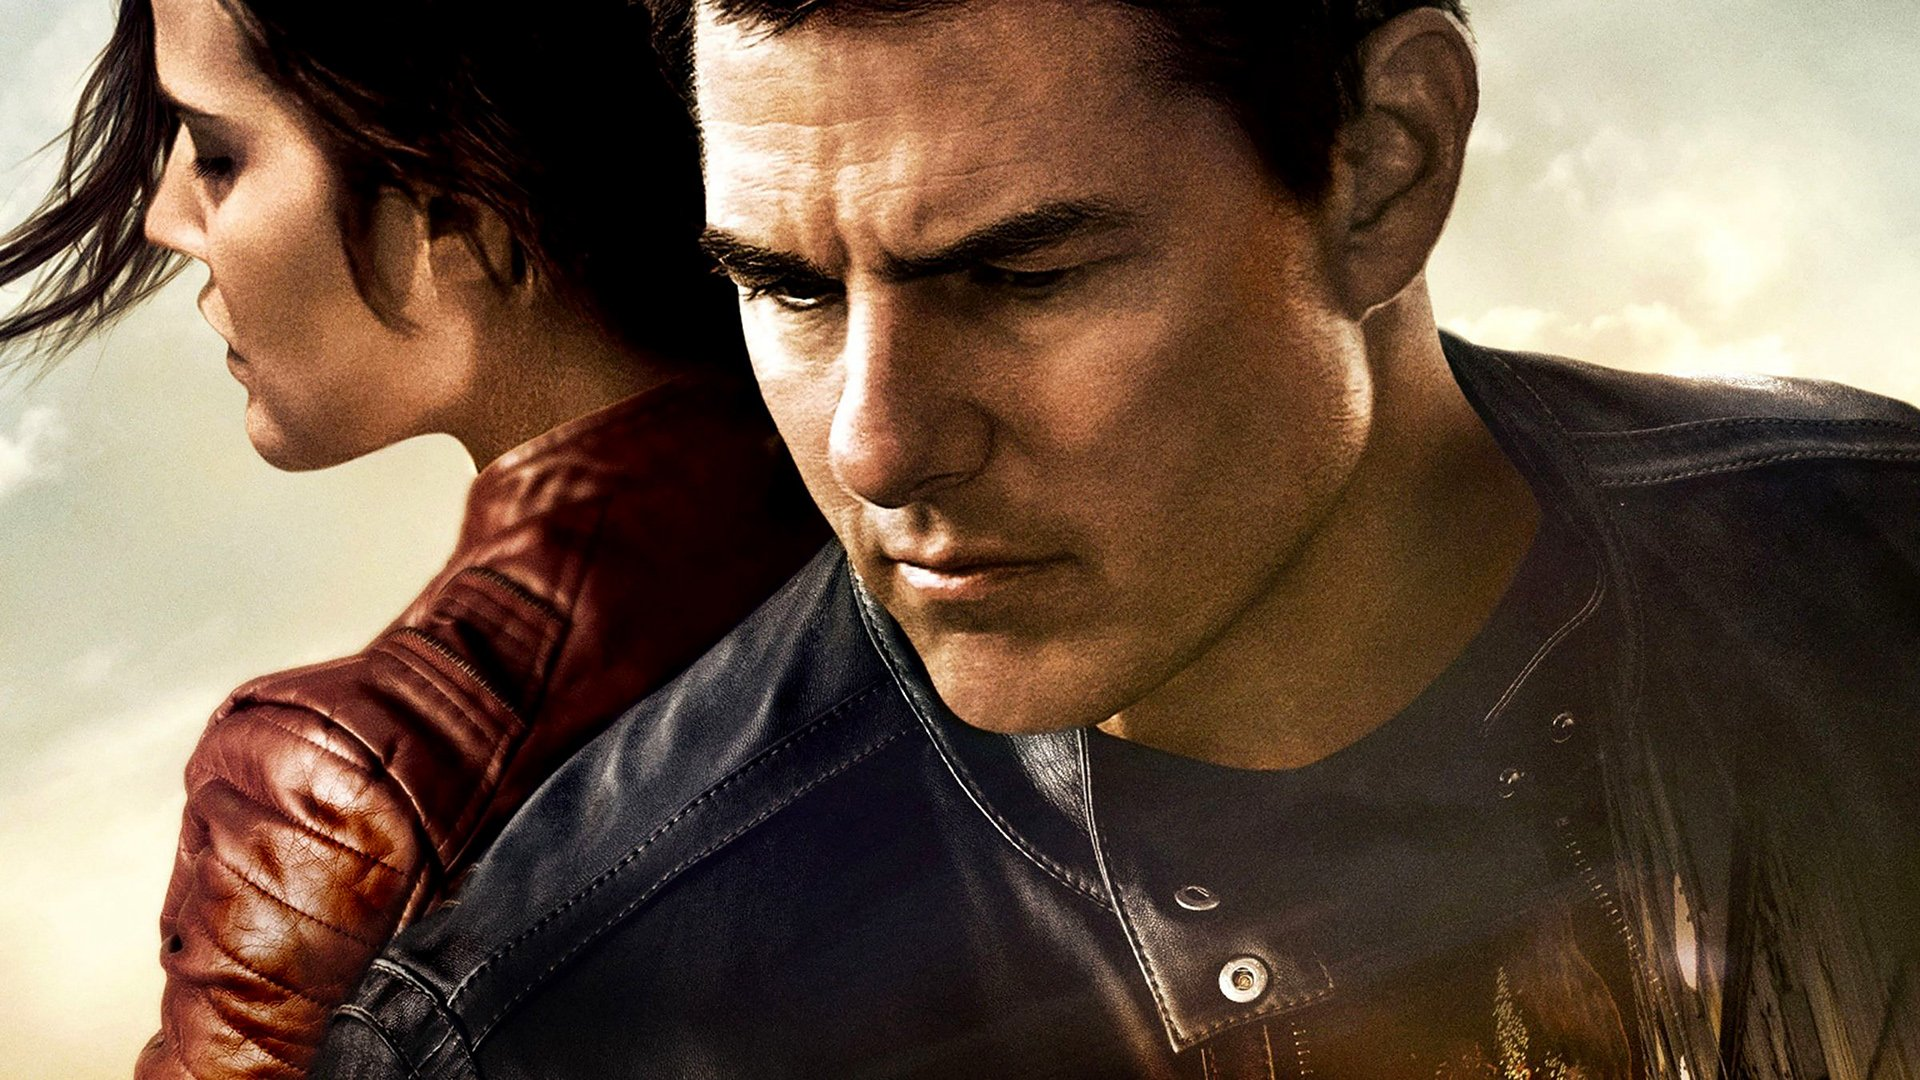 5 Jack Reacher Never Go Back HD Wallpapers Background Images 1920x1080